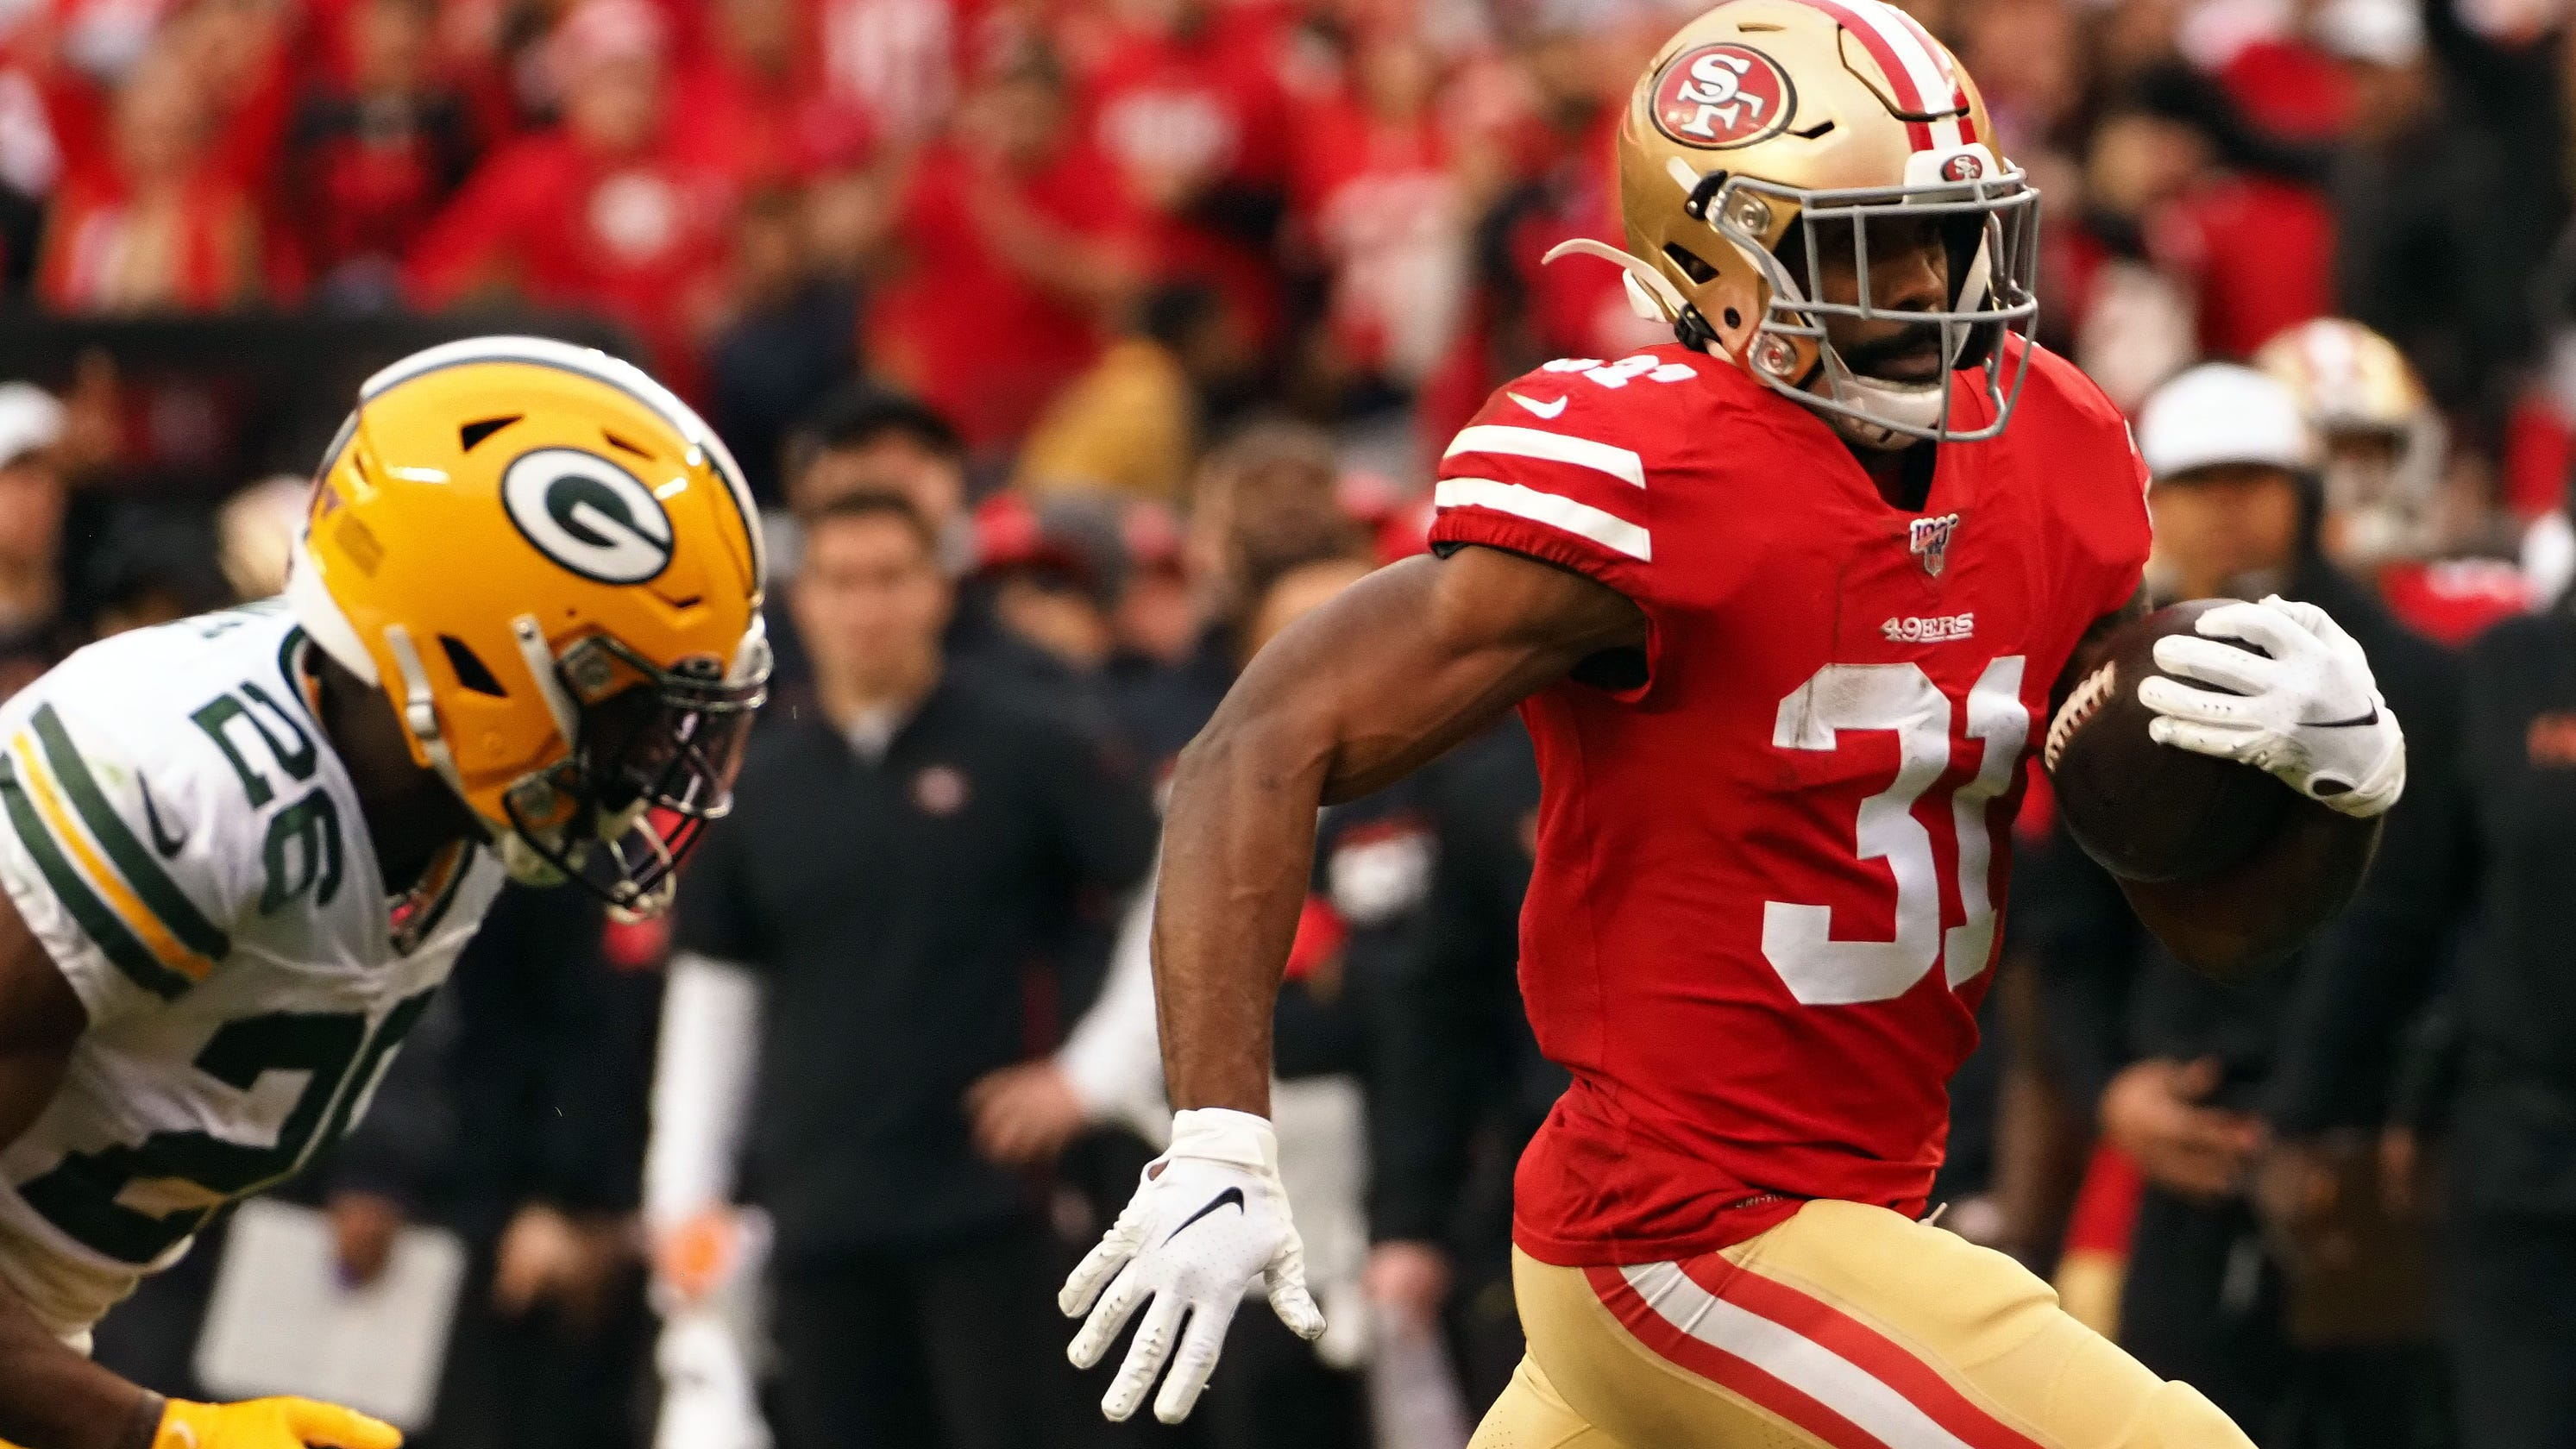 Former Purdue RB Raheem Mostert willing to return after initial coronavirus concerns